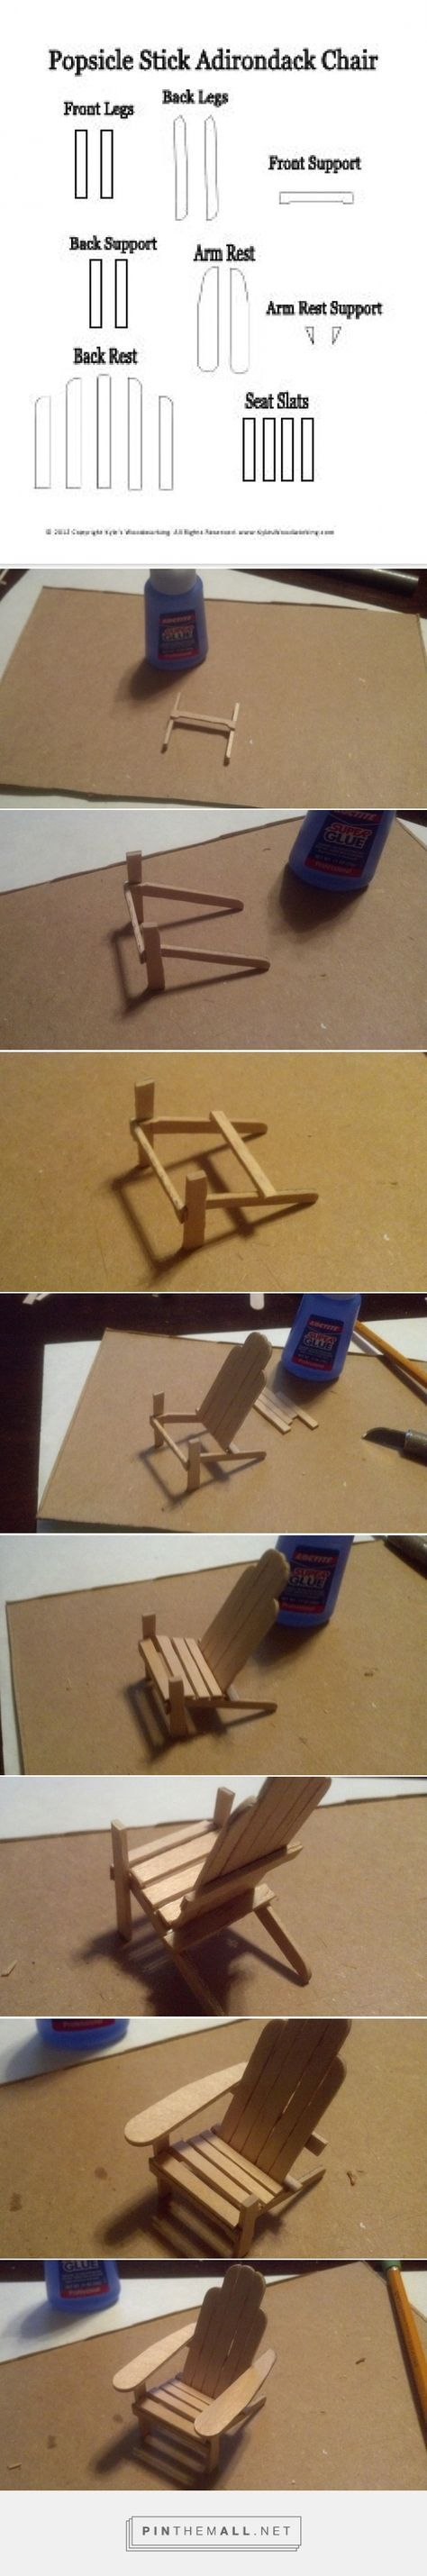 How To Make A Popsicle Stick Mini Adirondack Chair... - a grouped images picture - Pin Them All